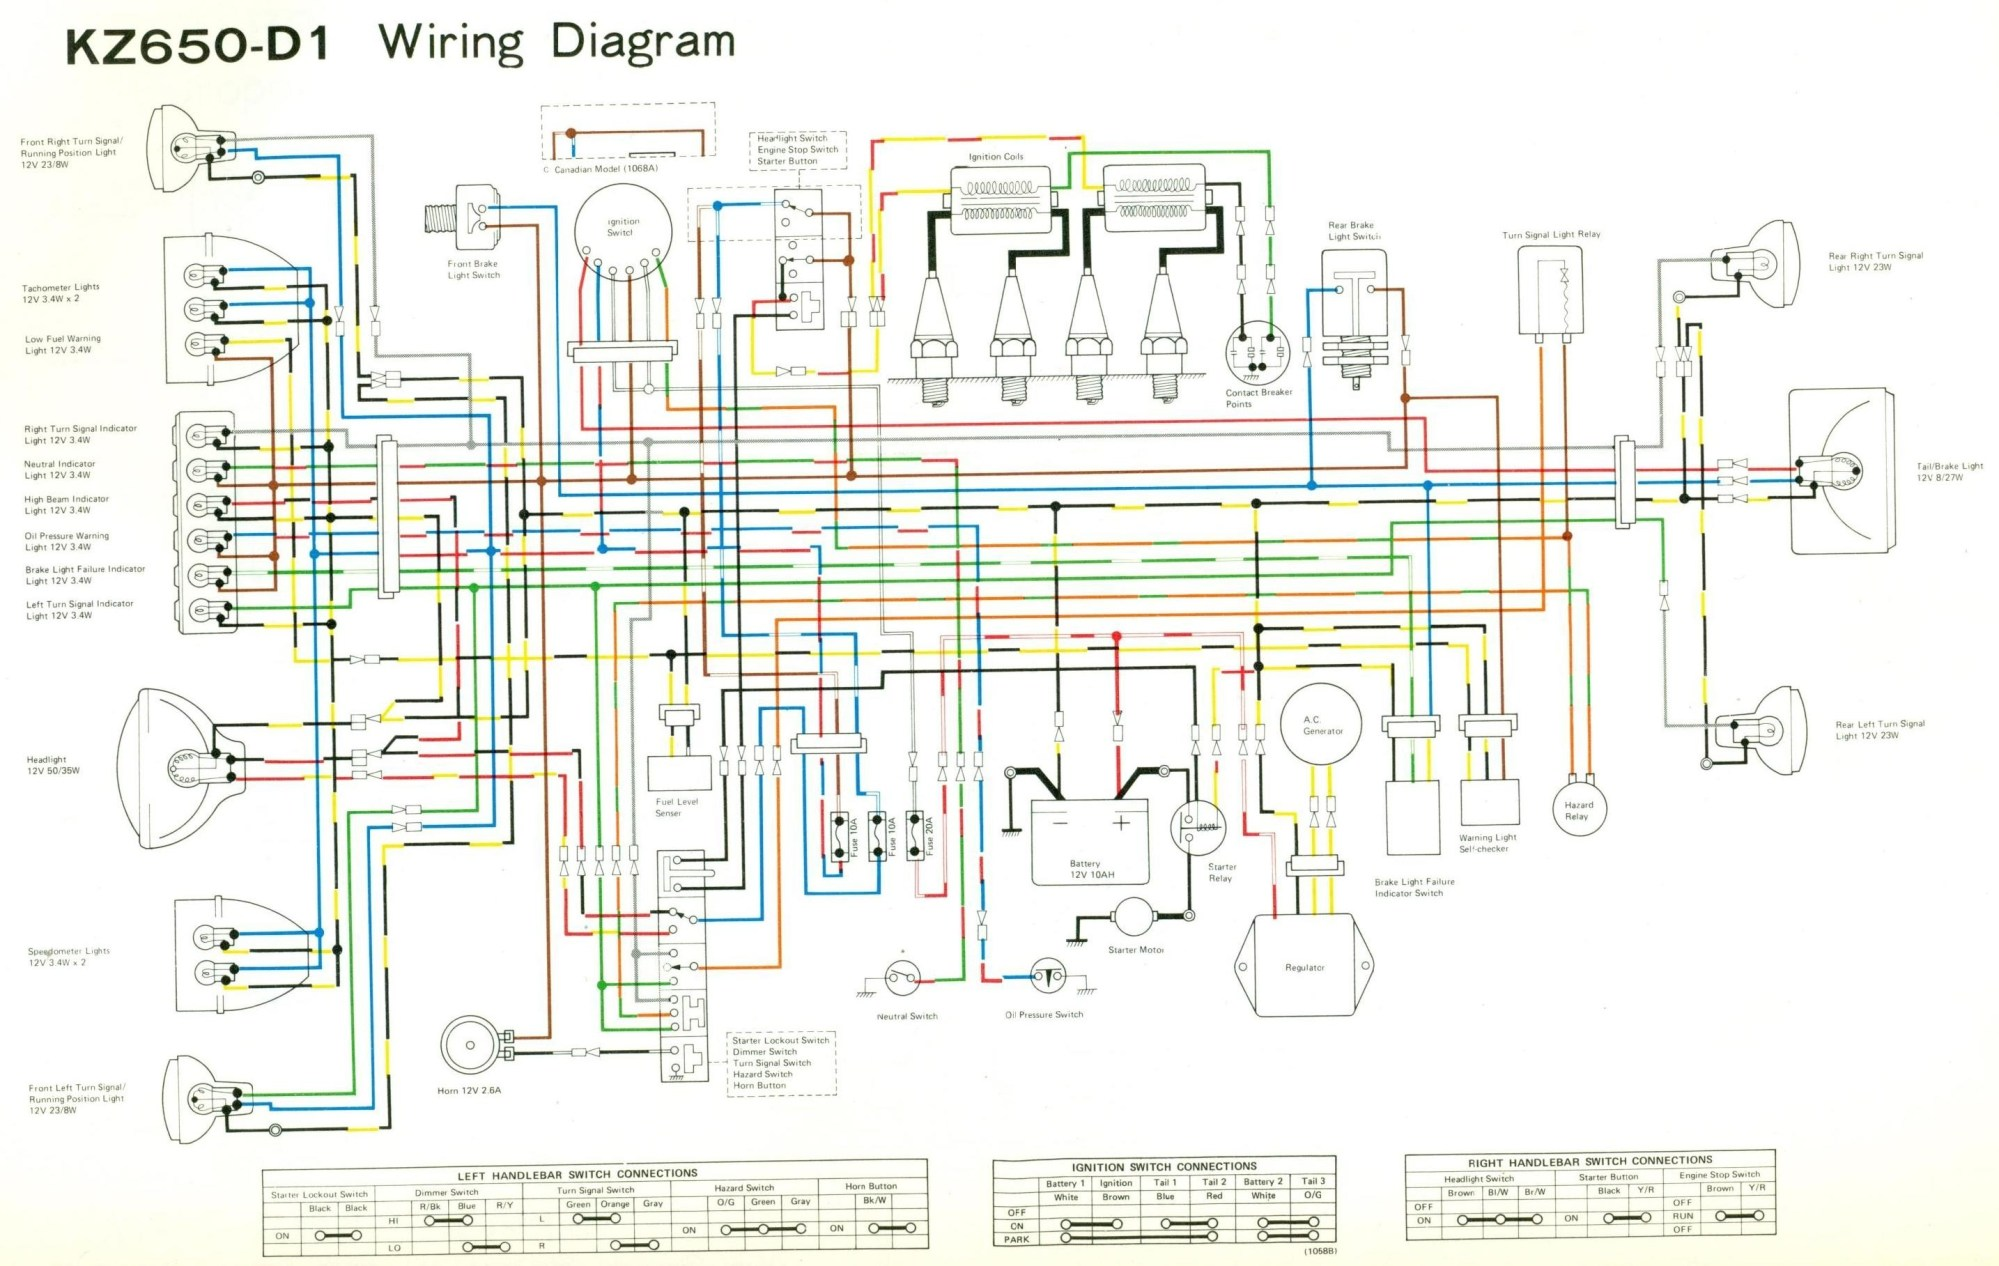 hight resolution of 1983 honda shadow 750 wiring diagram honda motorcycle wiring harness additionally 1980 xs650 wiring of 1983